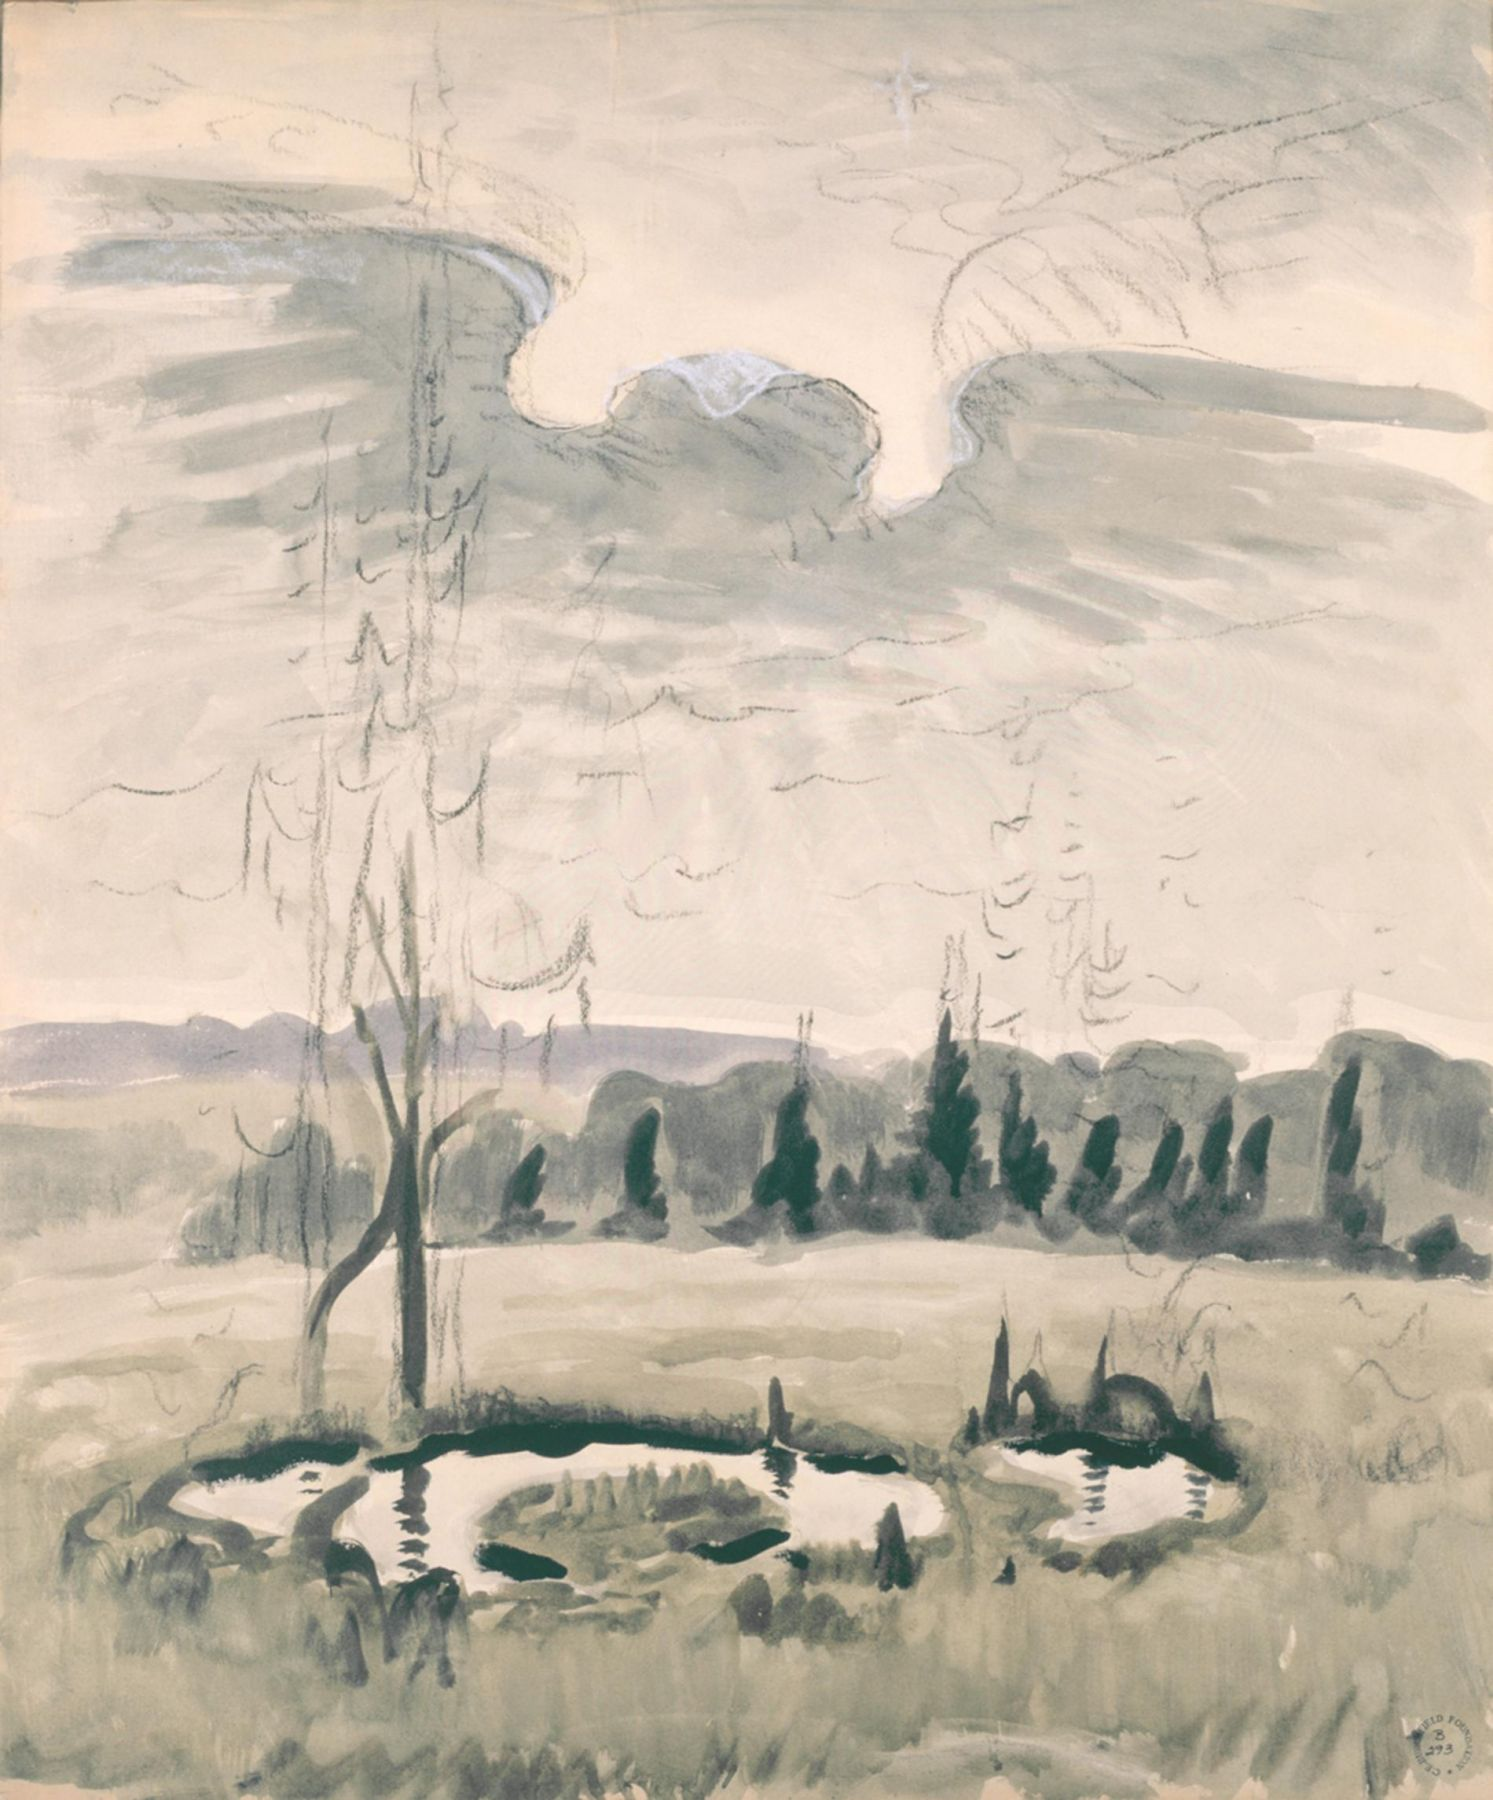 , CHARLES BURCHFIELD (1893-1967)Bird Wing Twilight,1951Watercolor, charcoal and chalk on paper29 7/8 x 25 in. (75.9 x 63.5 cm)